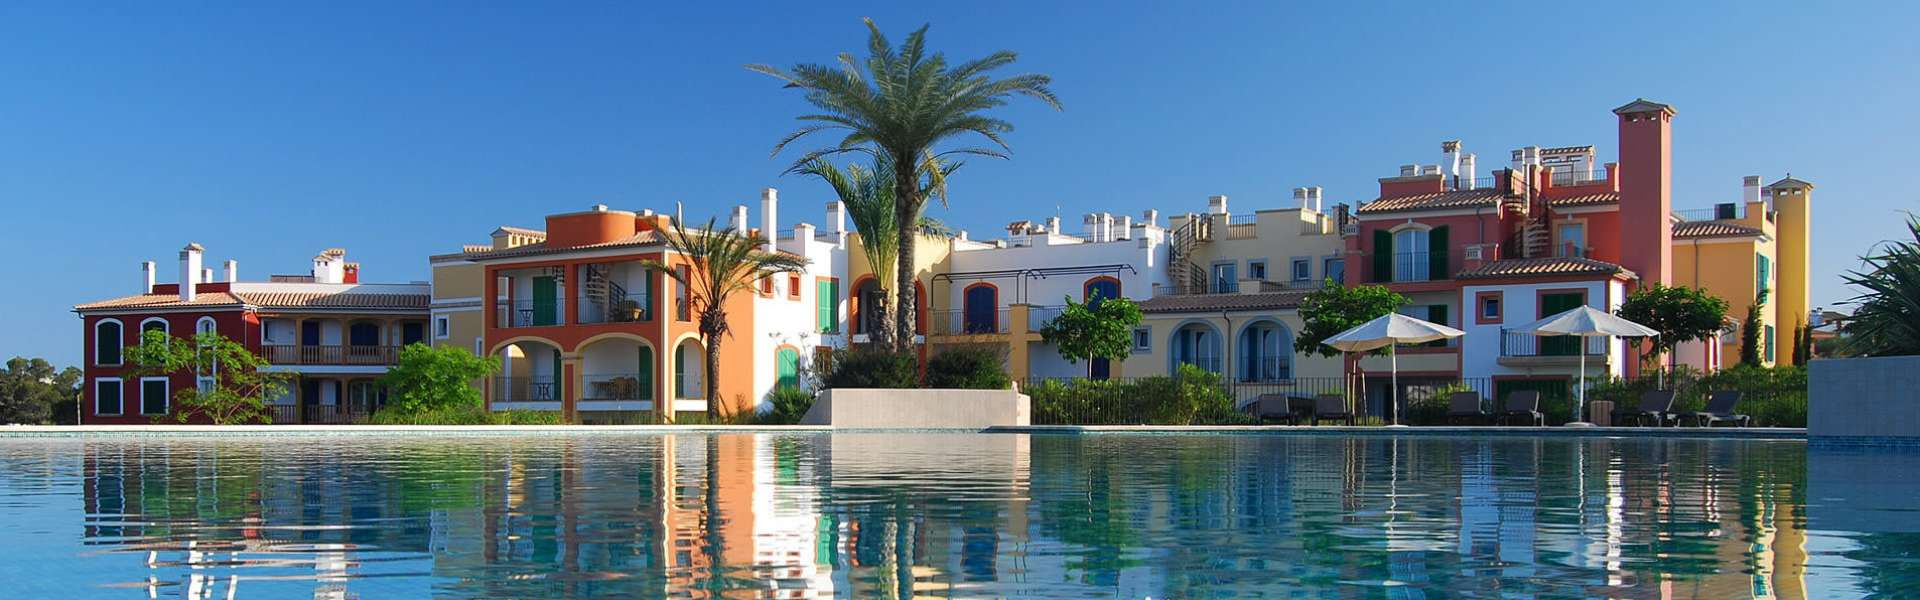 Porto Colom - apartments close to the sea